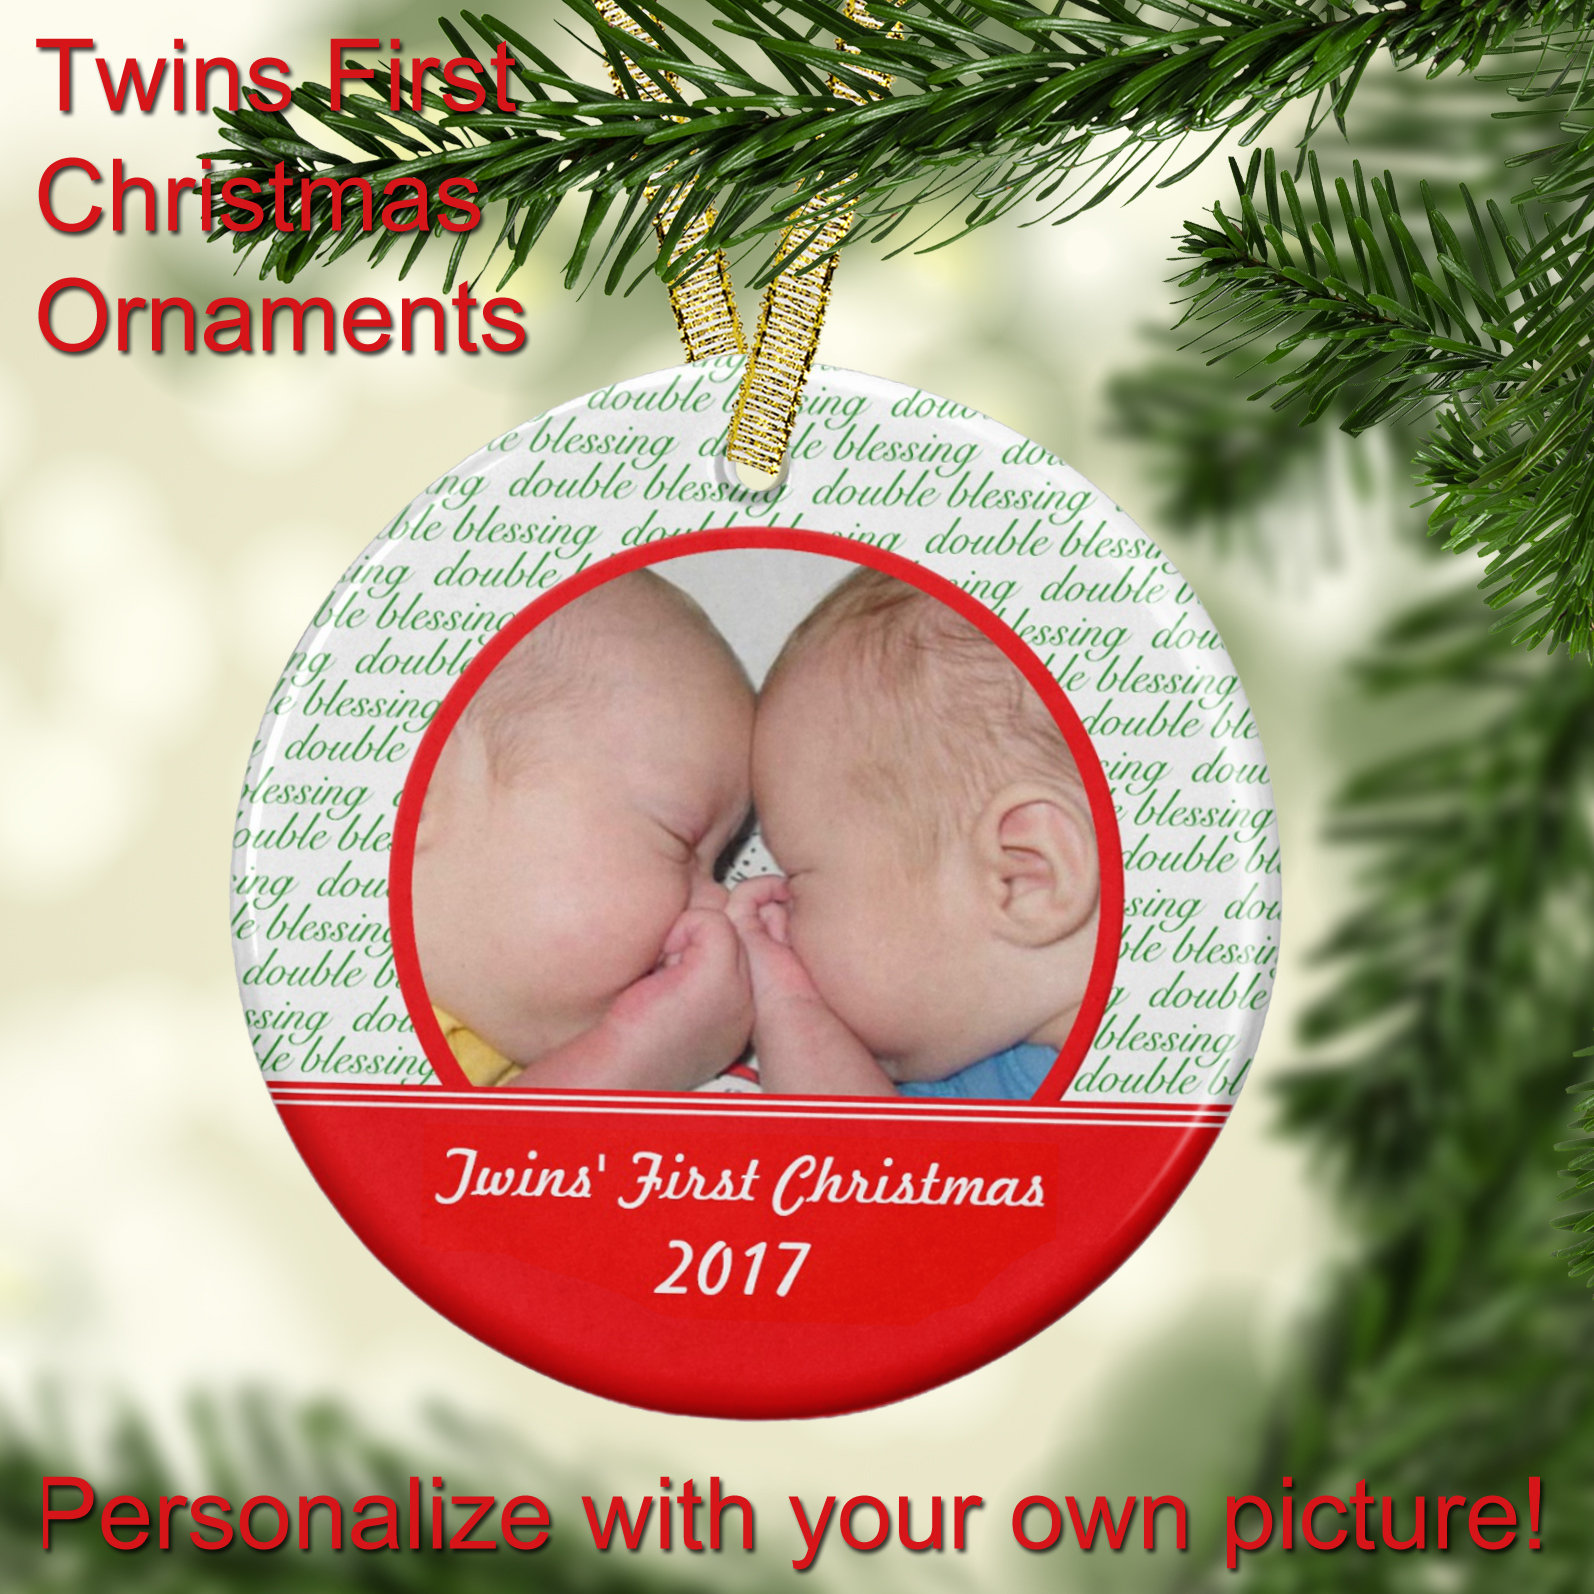 Twins Christmas Ornaments